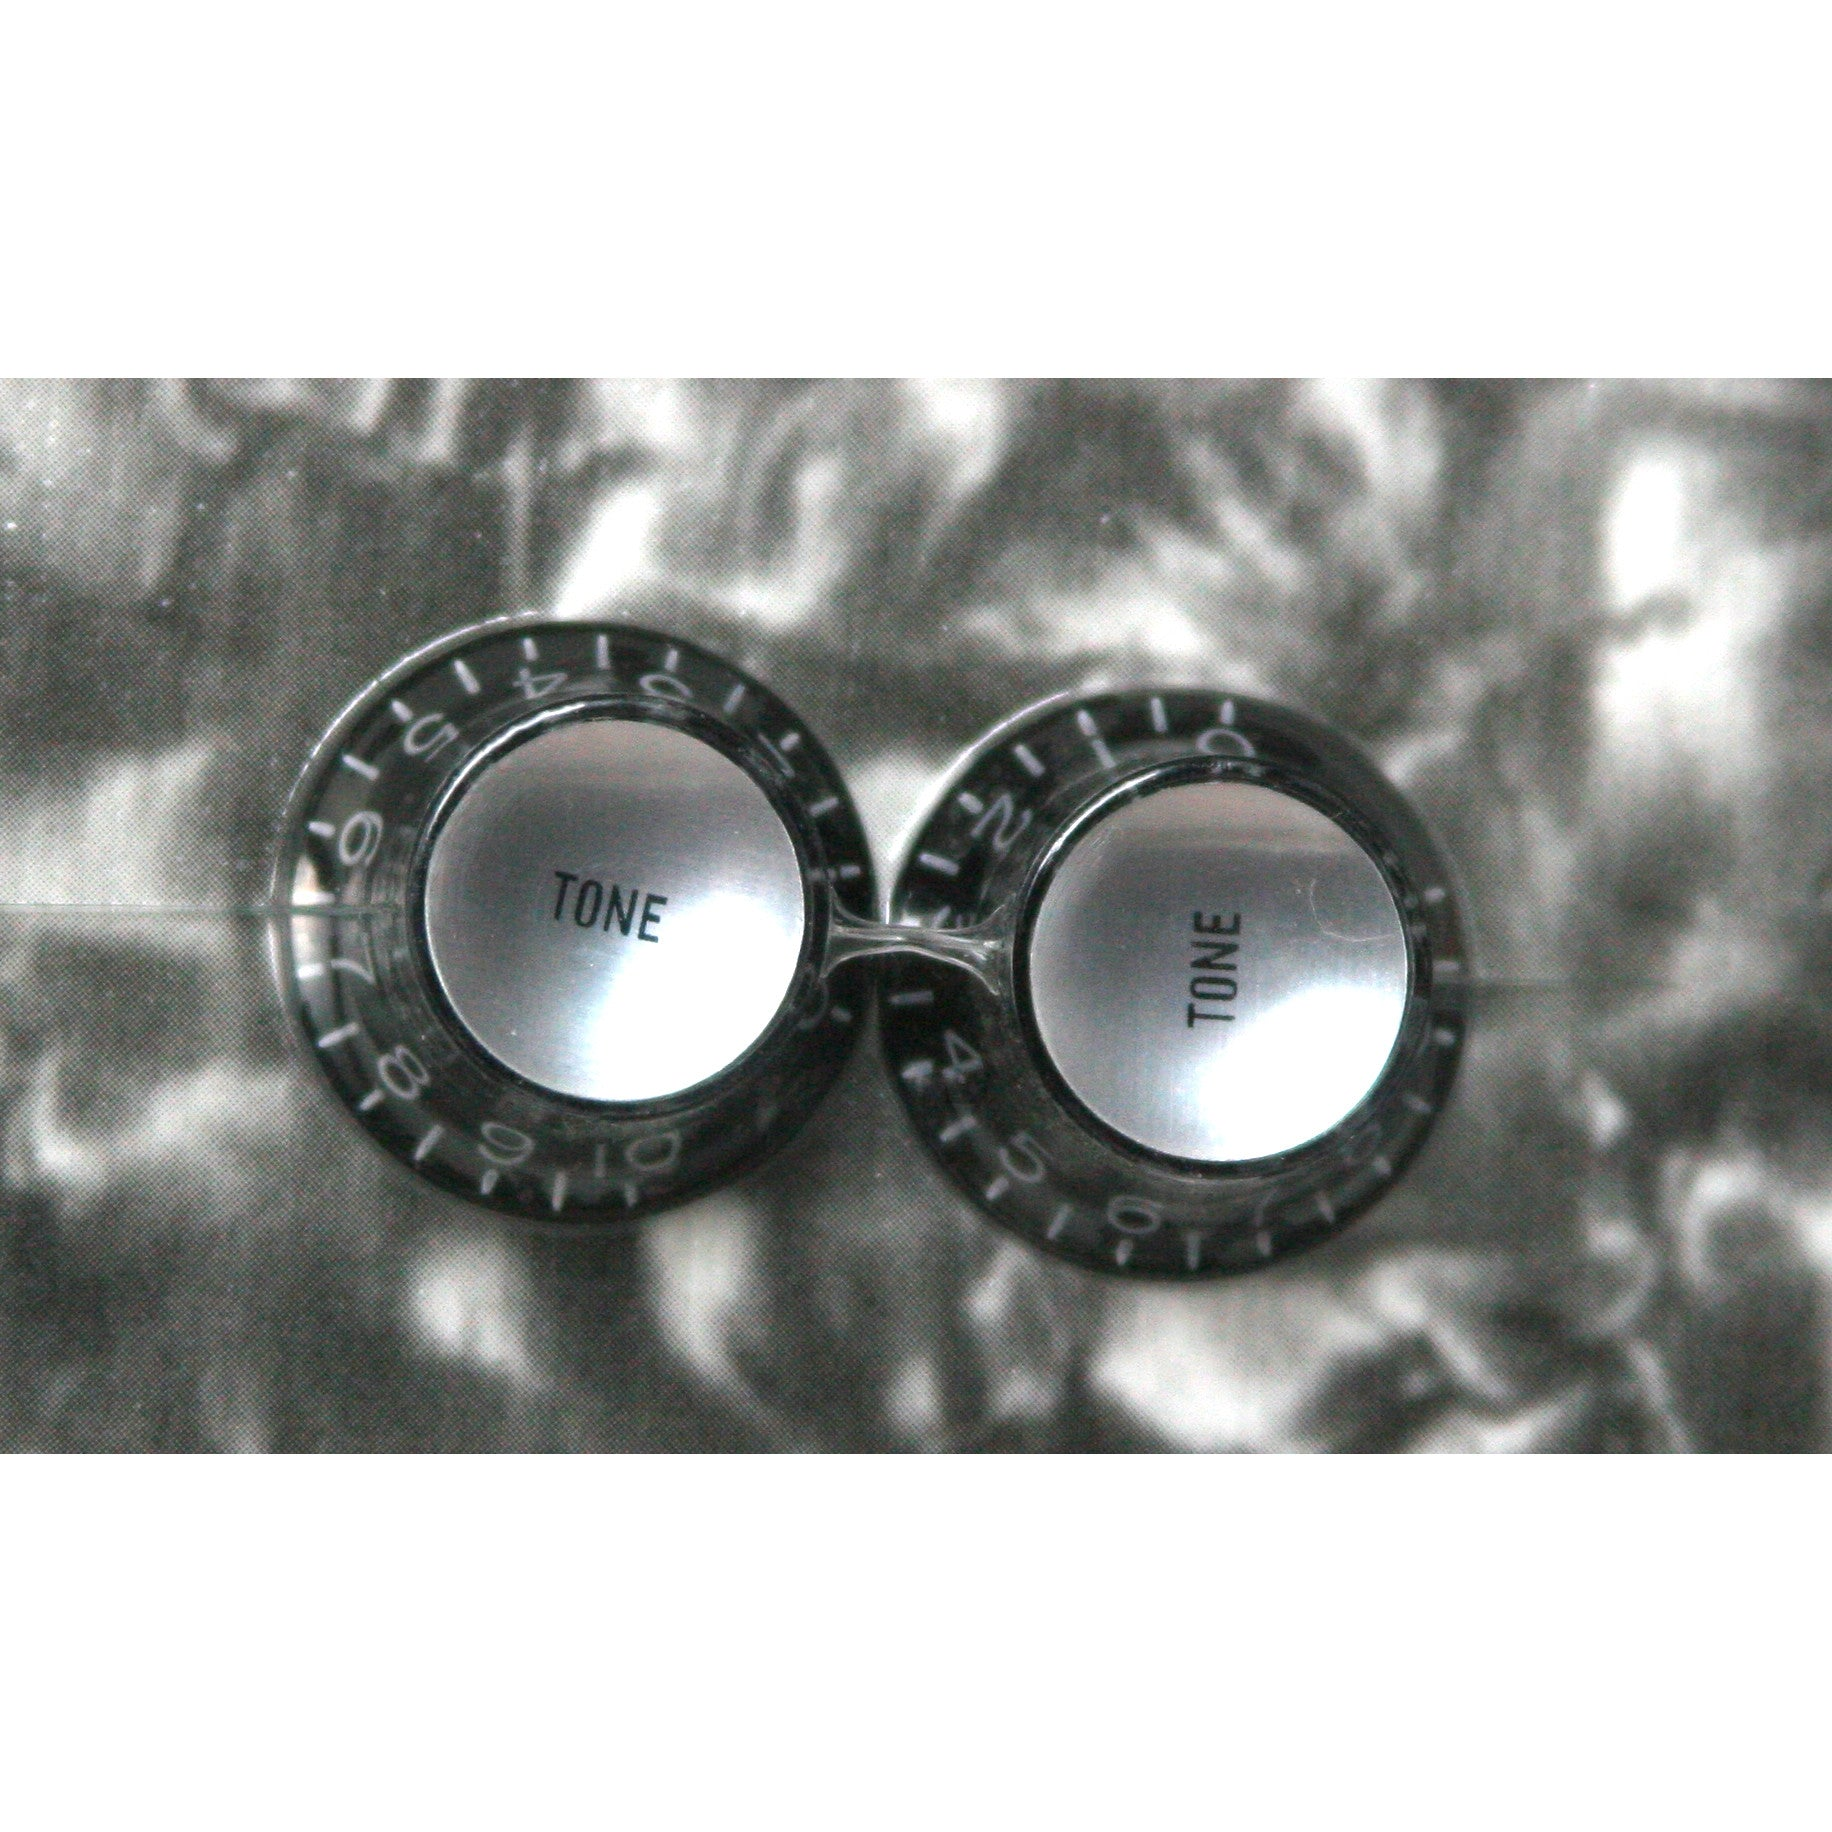 Reflector Cap (Silver) Tone Knobs (Qty 2), Black, fits USA split shaft pots.